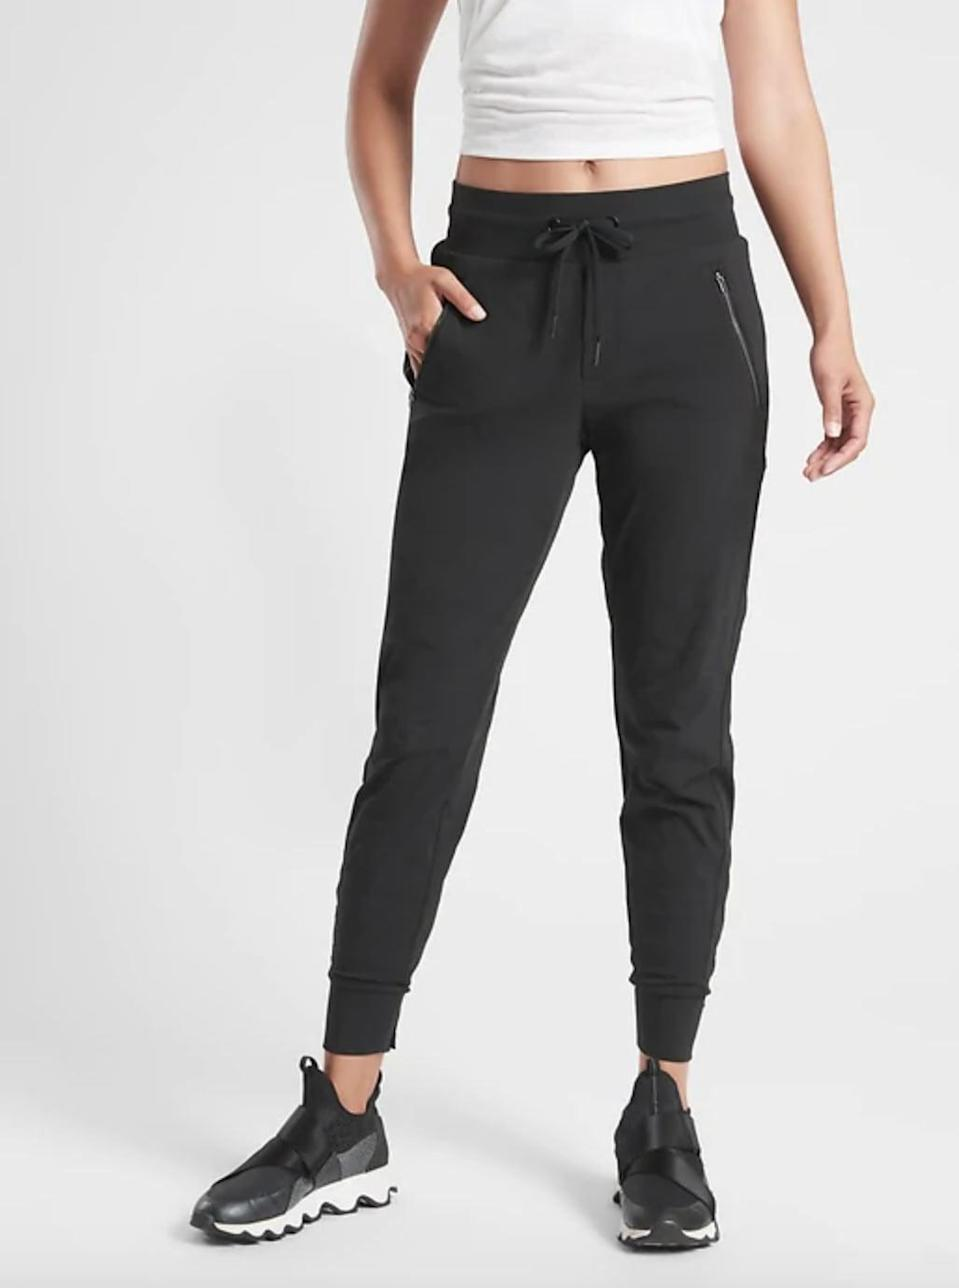 """<p>""""Over the last three months, I have been living in athleisure (this is no exaggeration). For summer, I wanted to wear something that would elevate my daily leggings uniform into something a little more chic. I've been loving the super comfy <a href=""""https://www.popsugar.com/buy/Athleta-Trekkie-North-Jogger-578965?p_name=Athleta%20Trekkie%20North%20Jogger&retailer=athleta.gap.com&pid=578965&price=89&evar1=fit%3Auk&evar9=47513257&evar98=https%3A%2F%2Fwww.popsugar.com%2Ffitness%2Fphoto-gallery%2F47513257%2Fimage%2F47522240%2FAthleta-Trekkie-North-Jogger&list1=healthy%20living&prop13=api&pdata=1"""" class=""""link rapid-noclick-resp"""" rel=""""nofollow noopener"""" target=""""_blank"""" data-ylk=""""slk:Athleta Trekkie North Jogger"""">Athleta Trekkie North Jogger</a> ($89). I have the black pair, and they look great with white sneakers and a plain white T-shirt."""" - Christina Stiehl, senior editor, Fitness</p>"""